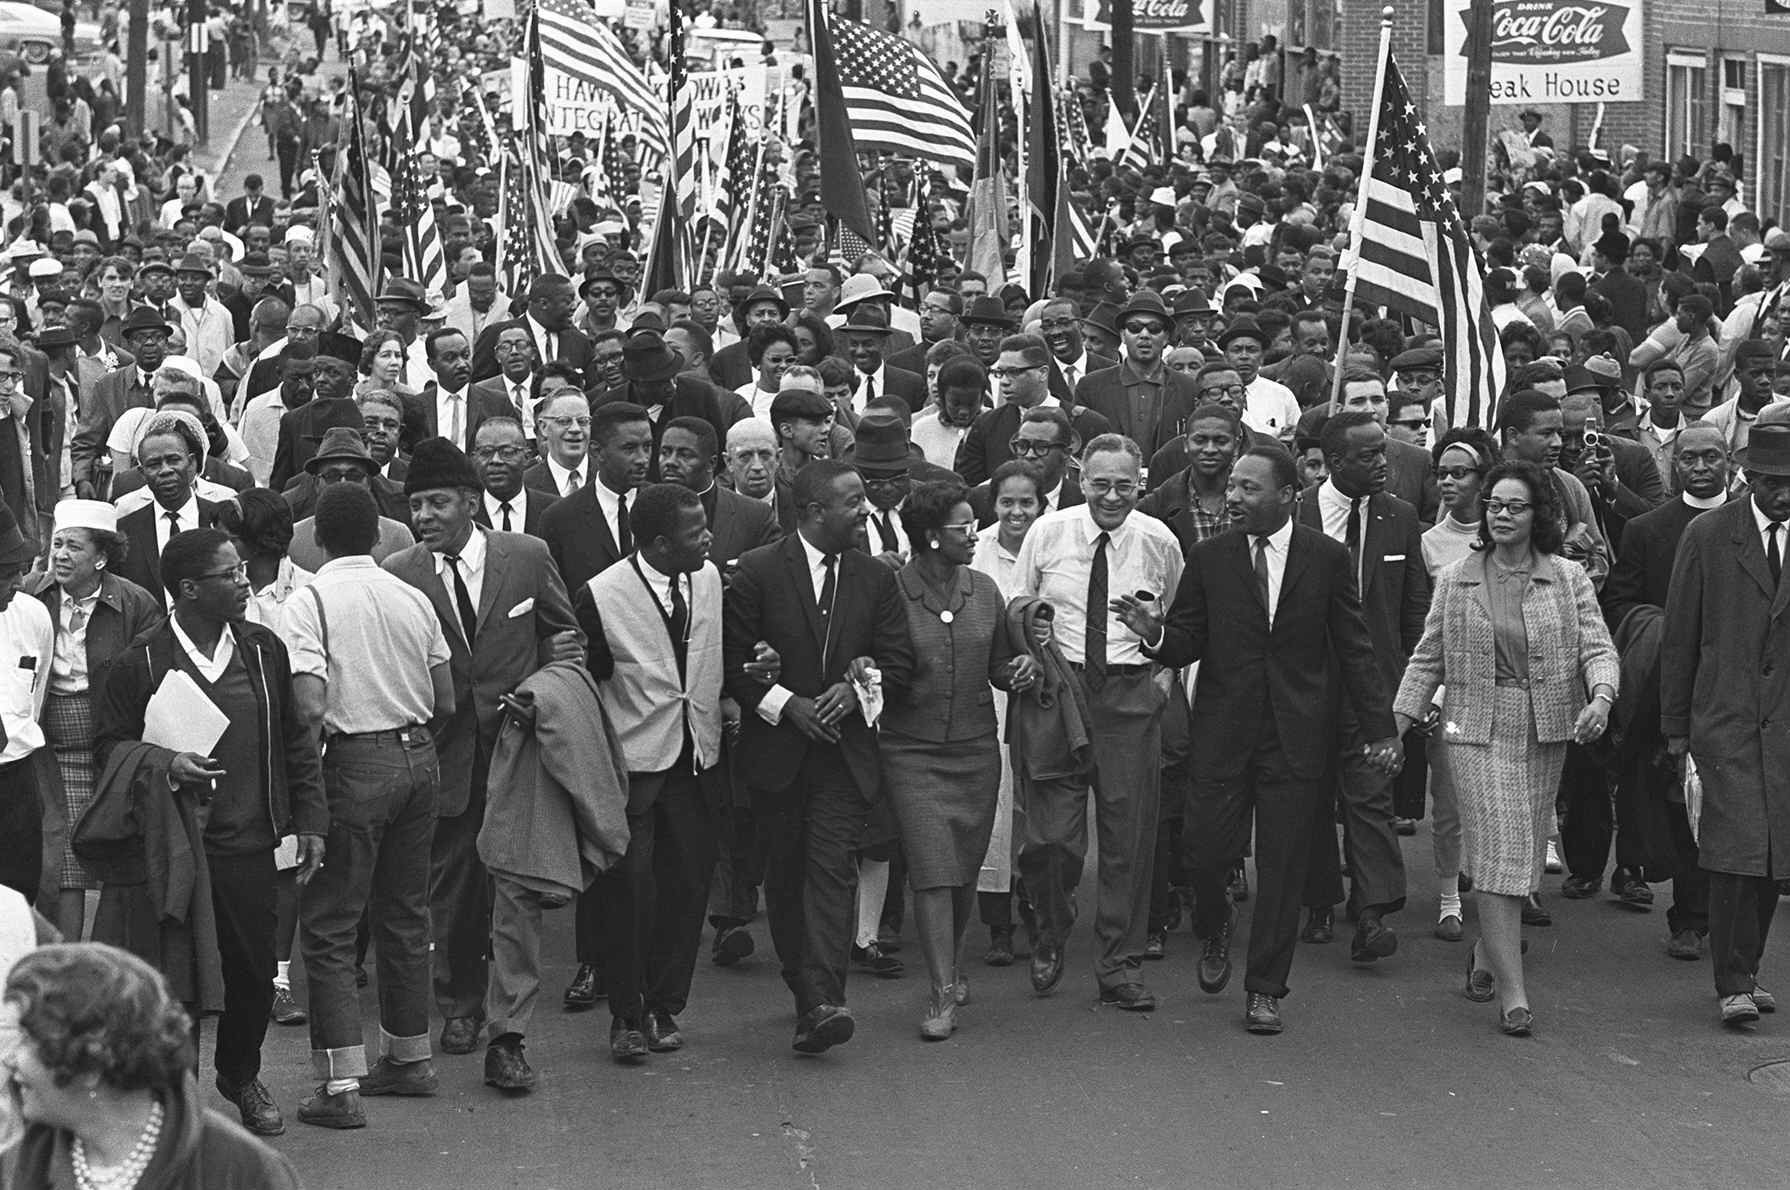 PAGE 94: ON MACRCH 25, 1965,MORE THAN 25,000 DEMONSTRATORS COMPLETED THE FINAL STRETCH OF THE 54-MILE MARCH FROM SELMA TO MONTGOMERY, ALABAMA (PERMISSION OF THE ASSOCIATED PRESS).